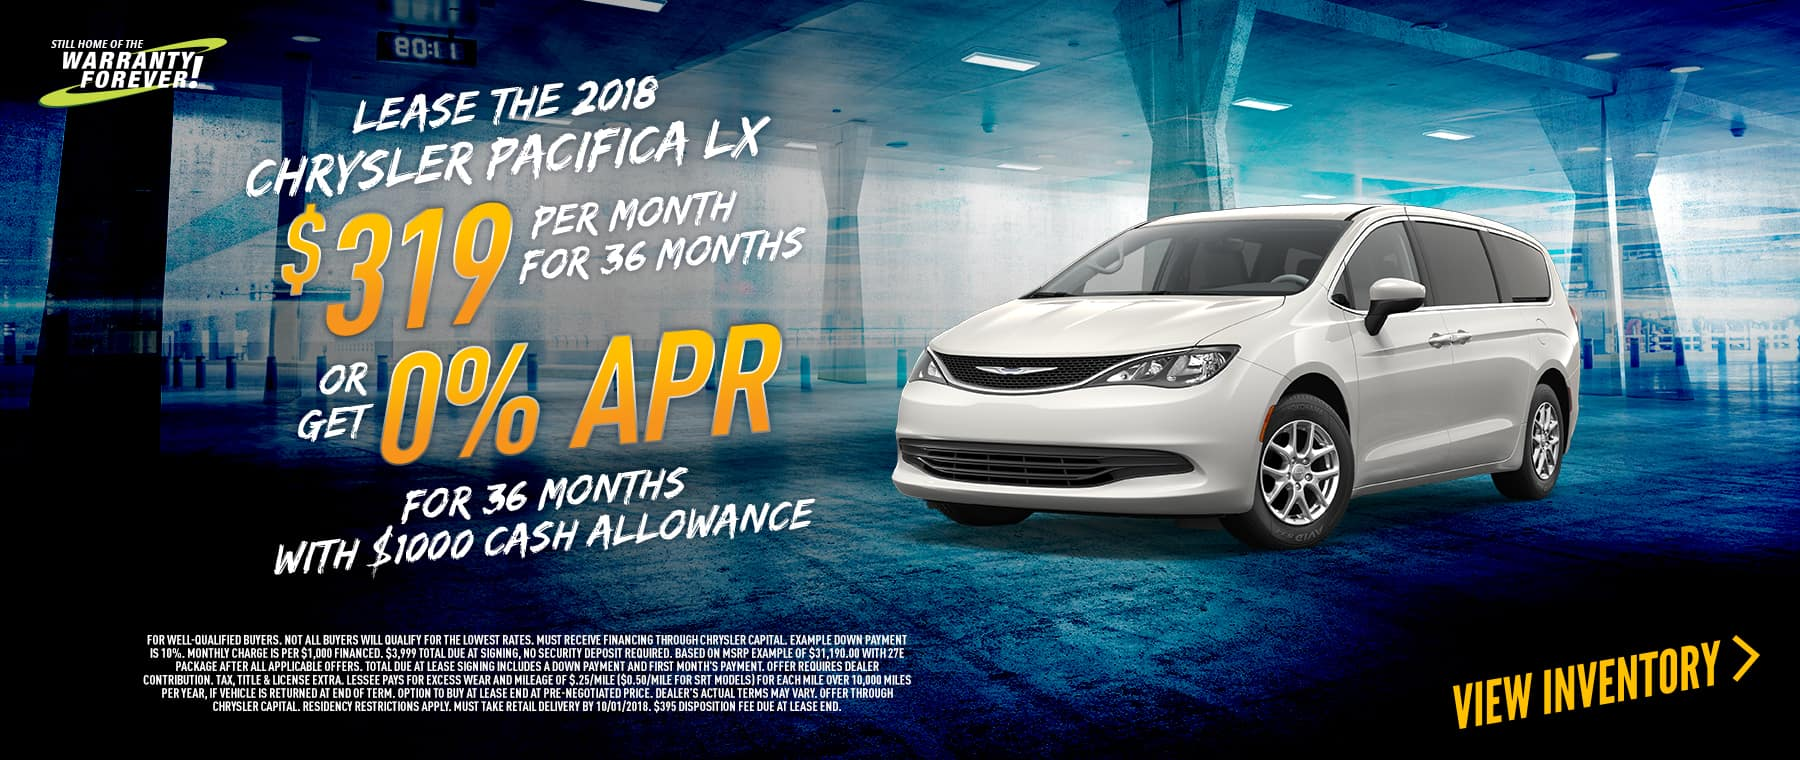 lease-2018-pacifica-319-month-or-zero-apr